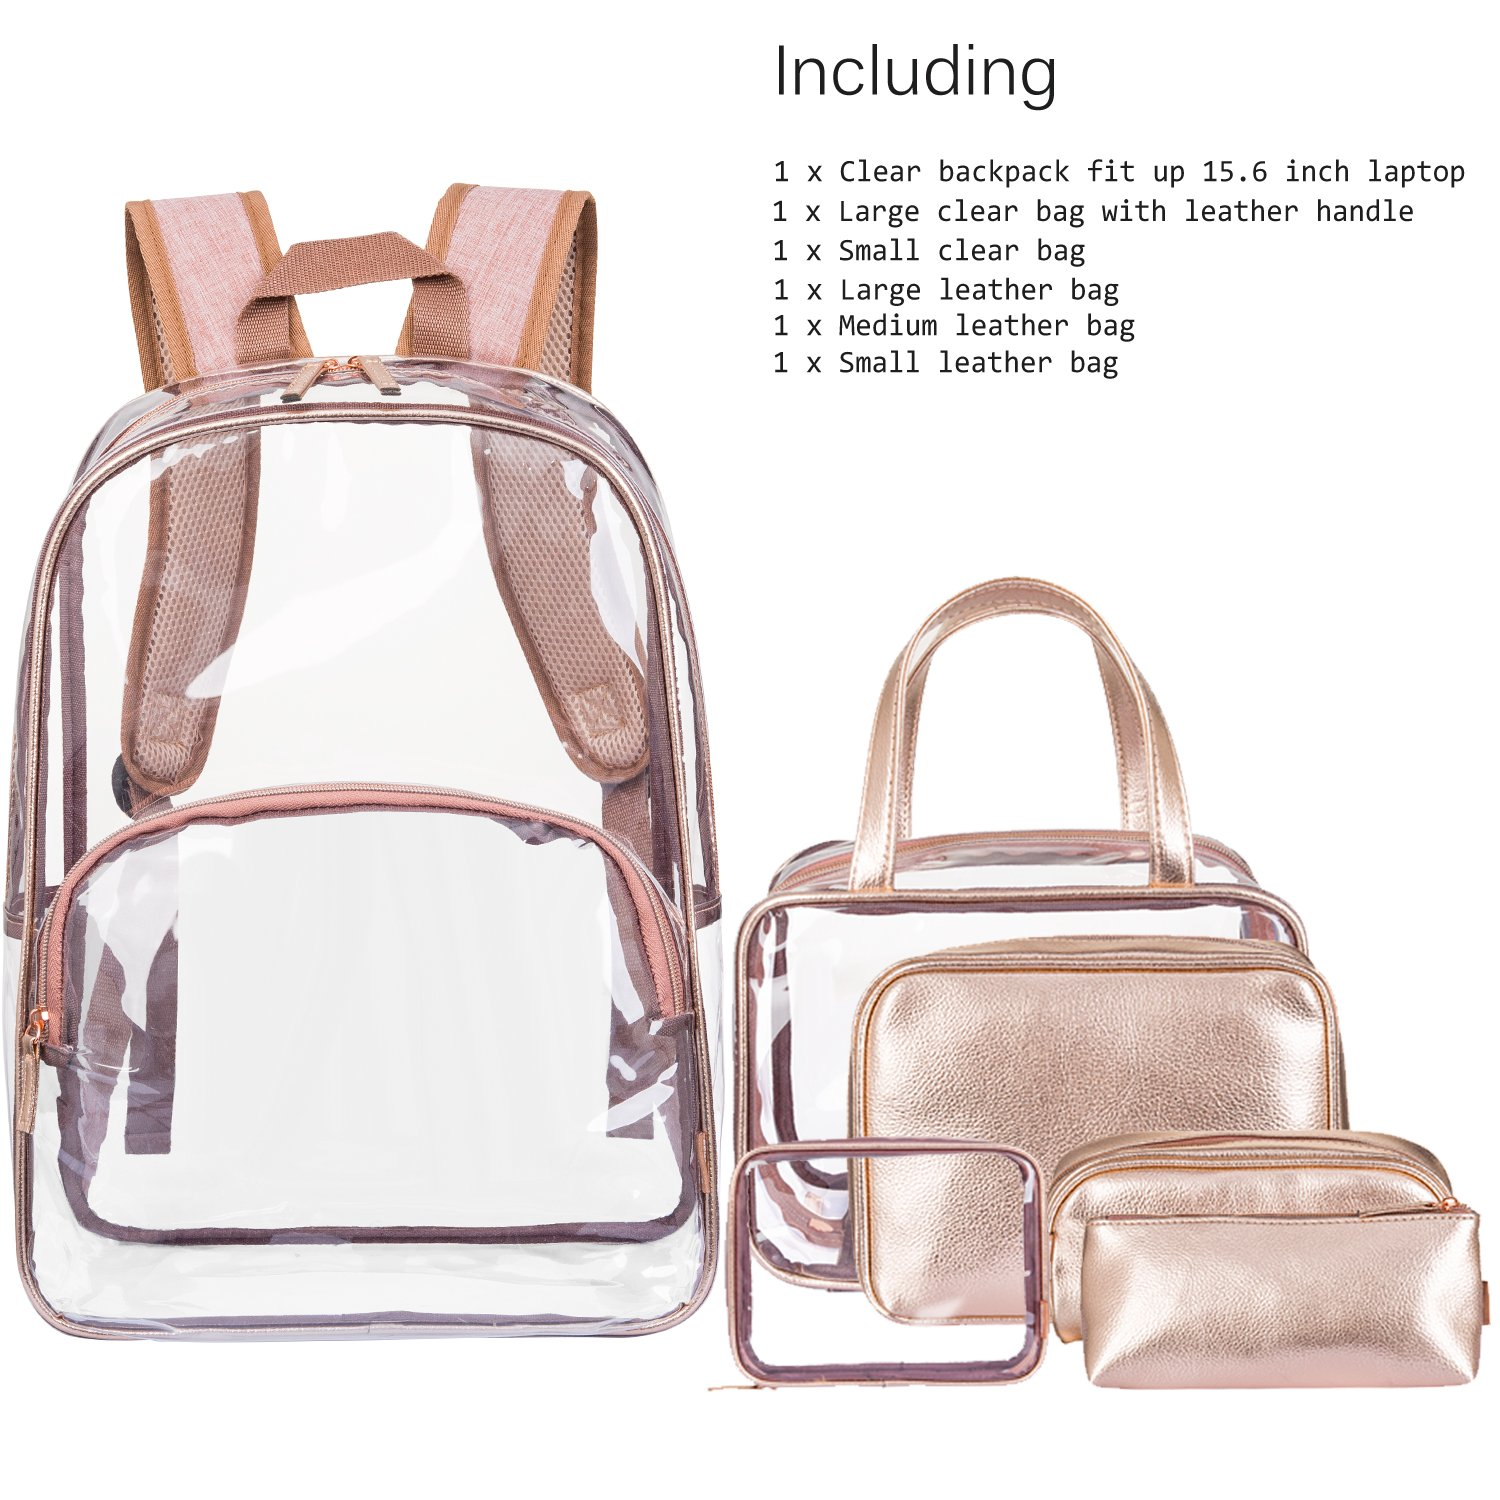 9f59b8f57597 NiceEbag 6 in 1 Clear Backpack with Cosmetic Bag   Case